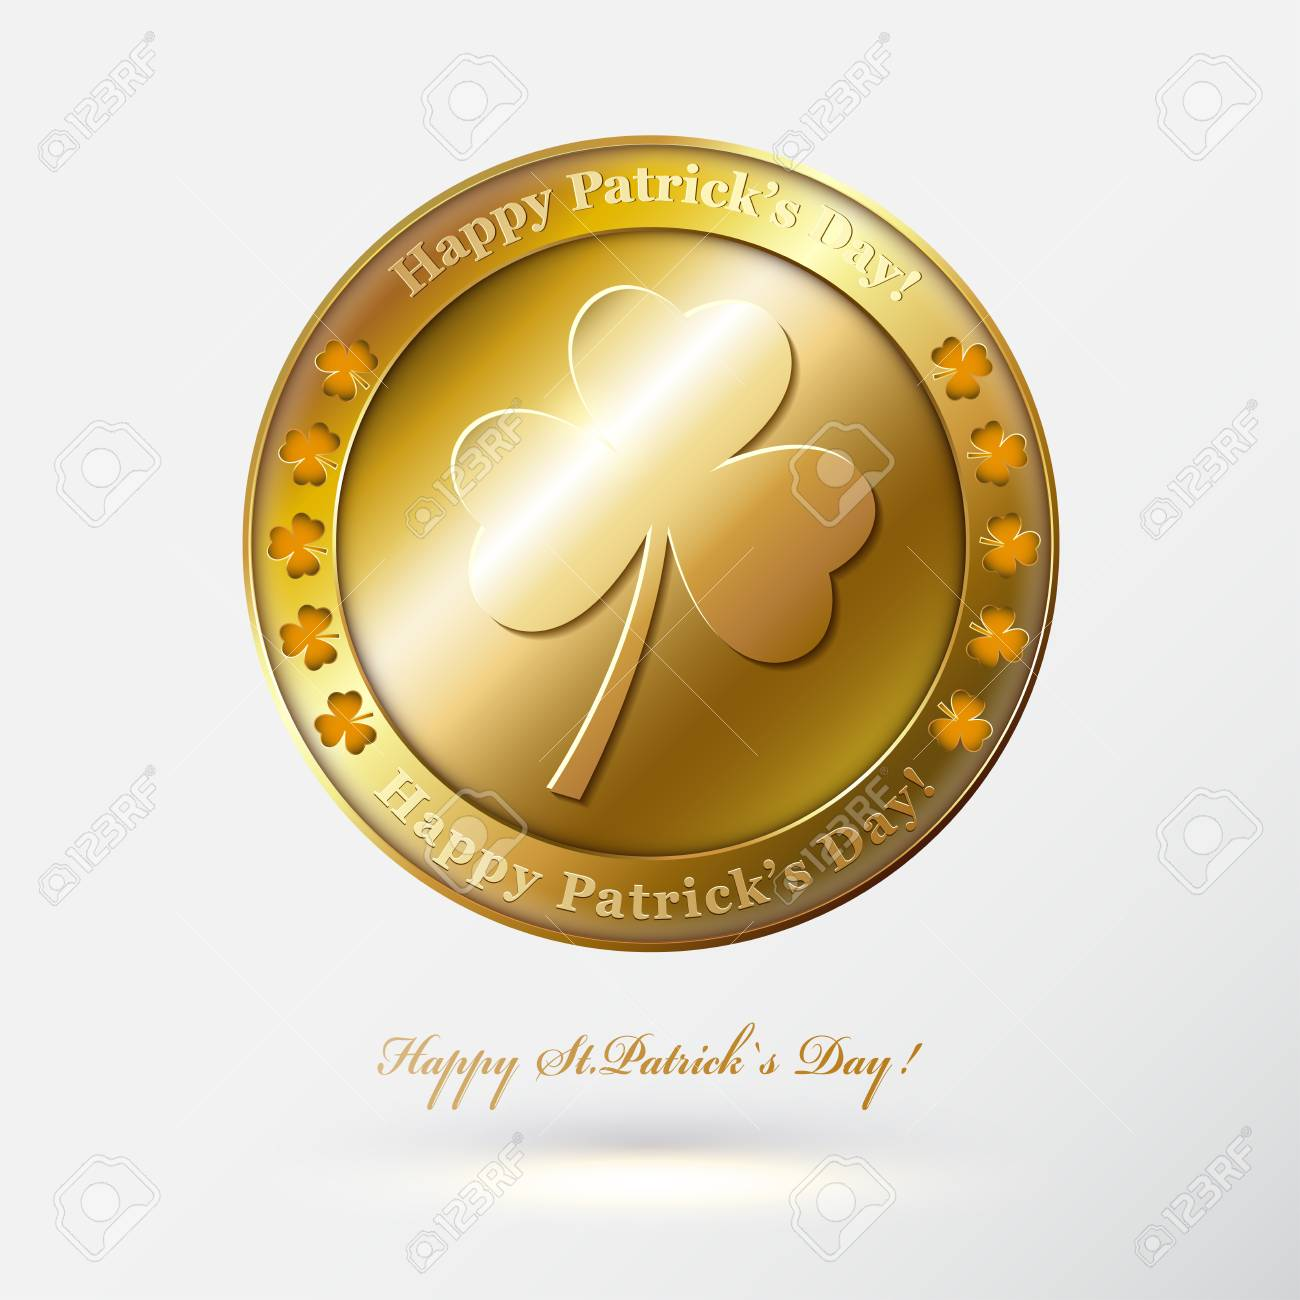 photograph about Printable Gold Coins called Delighted St Patricks Working day card or history with fair gold..